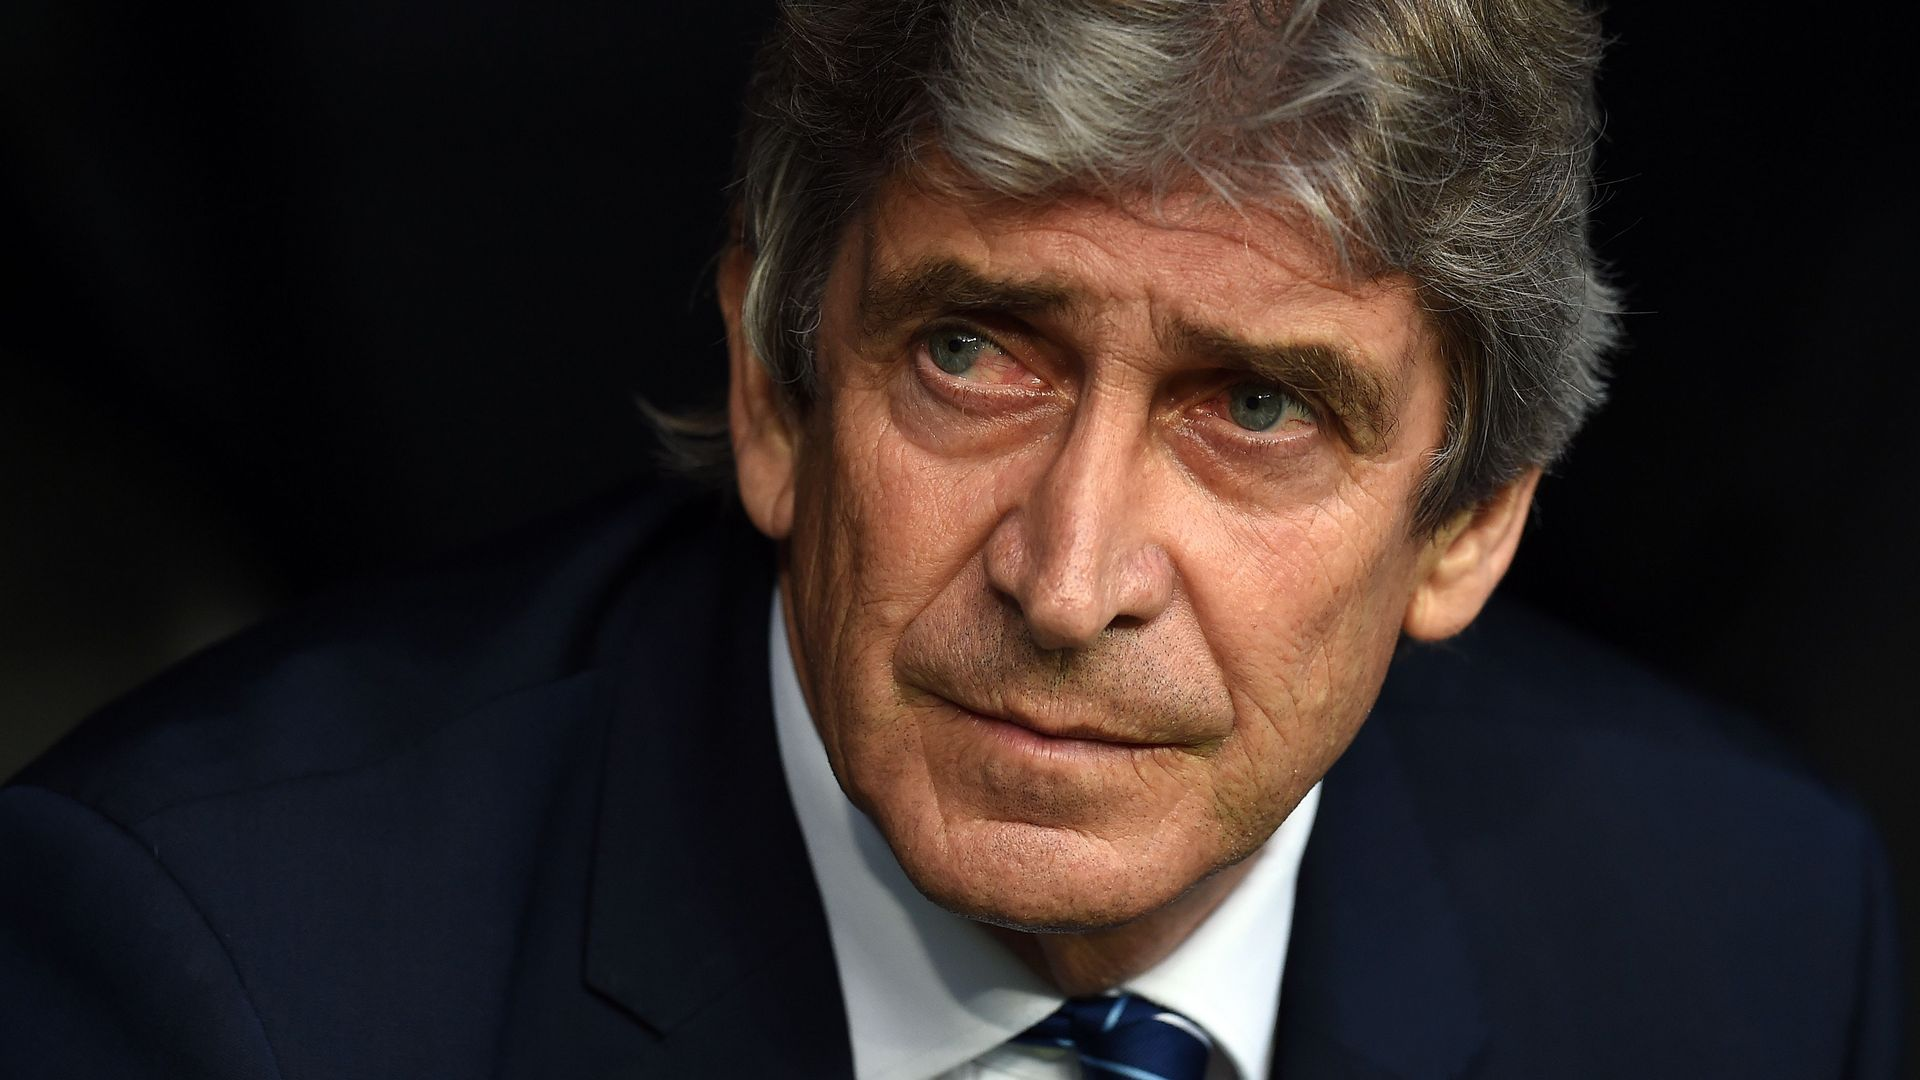 Manuel Pellegrini to become Real Betis head coach from next season